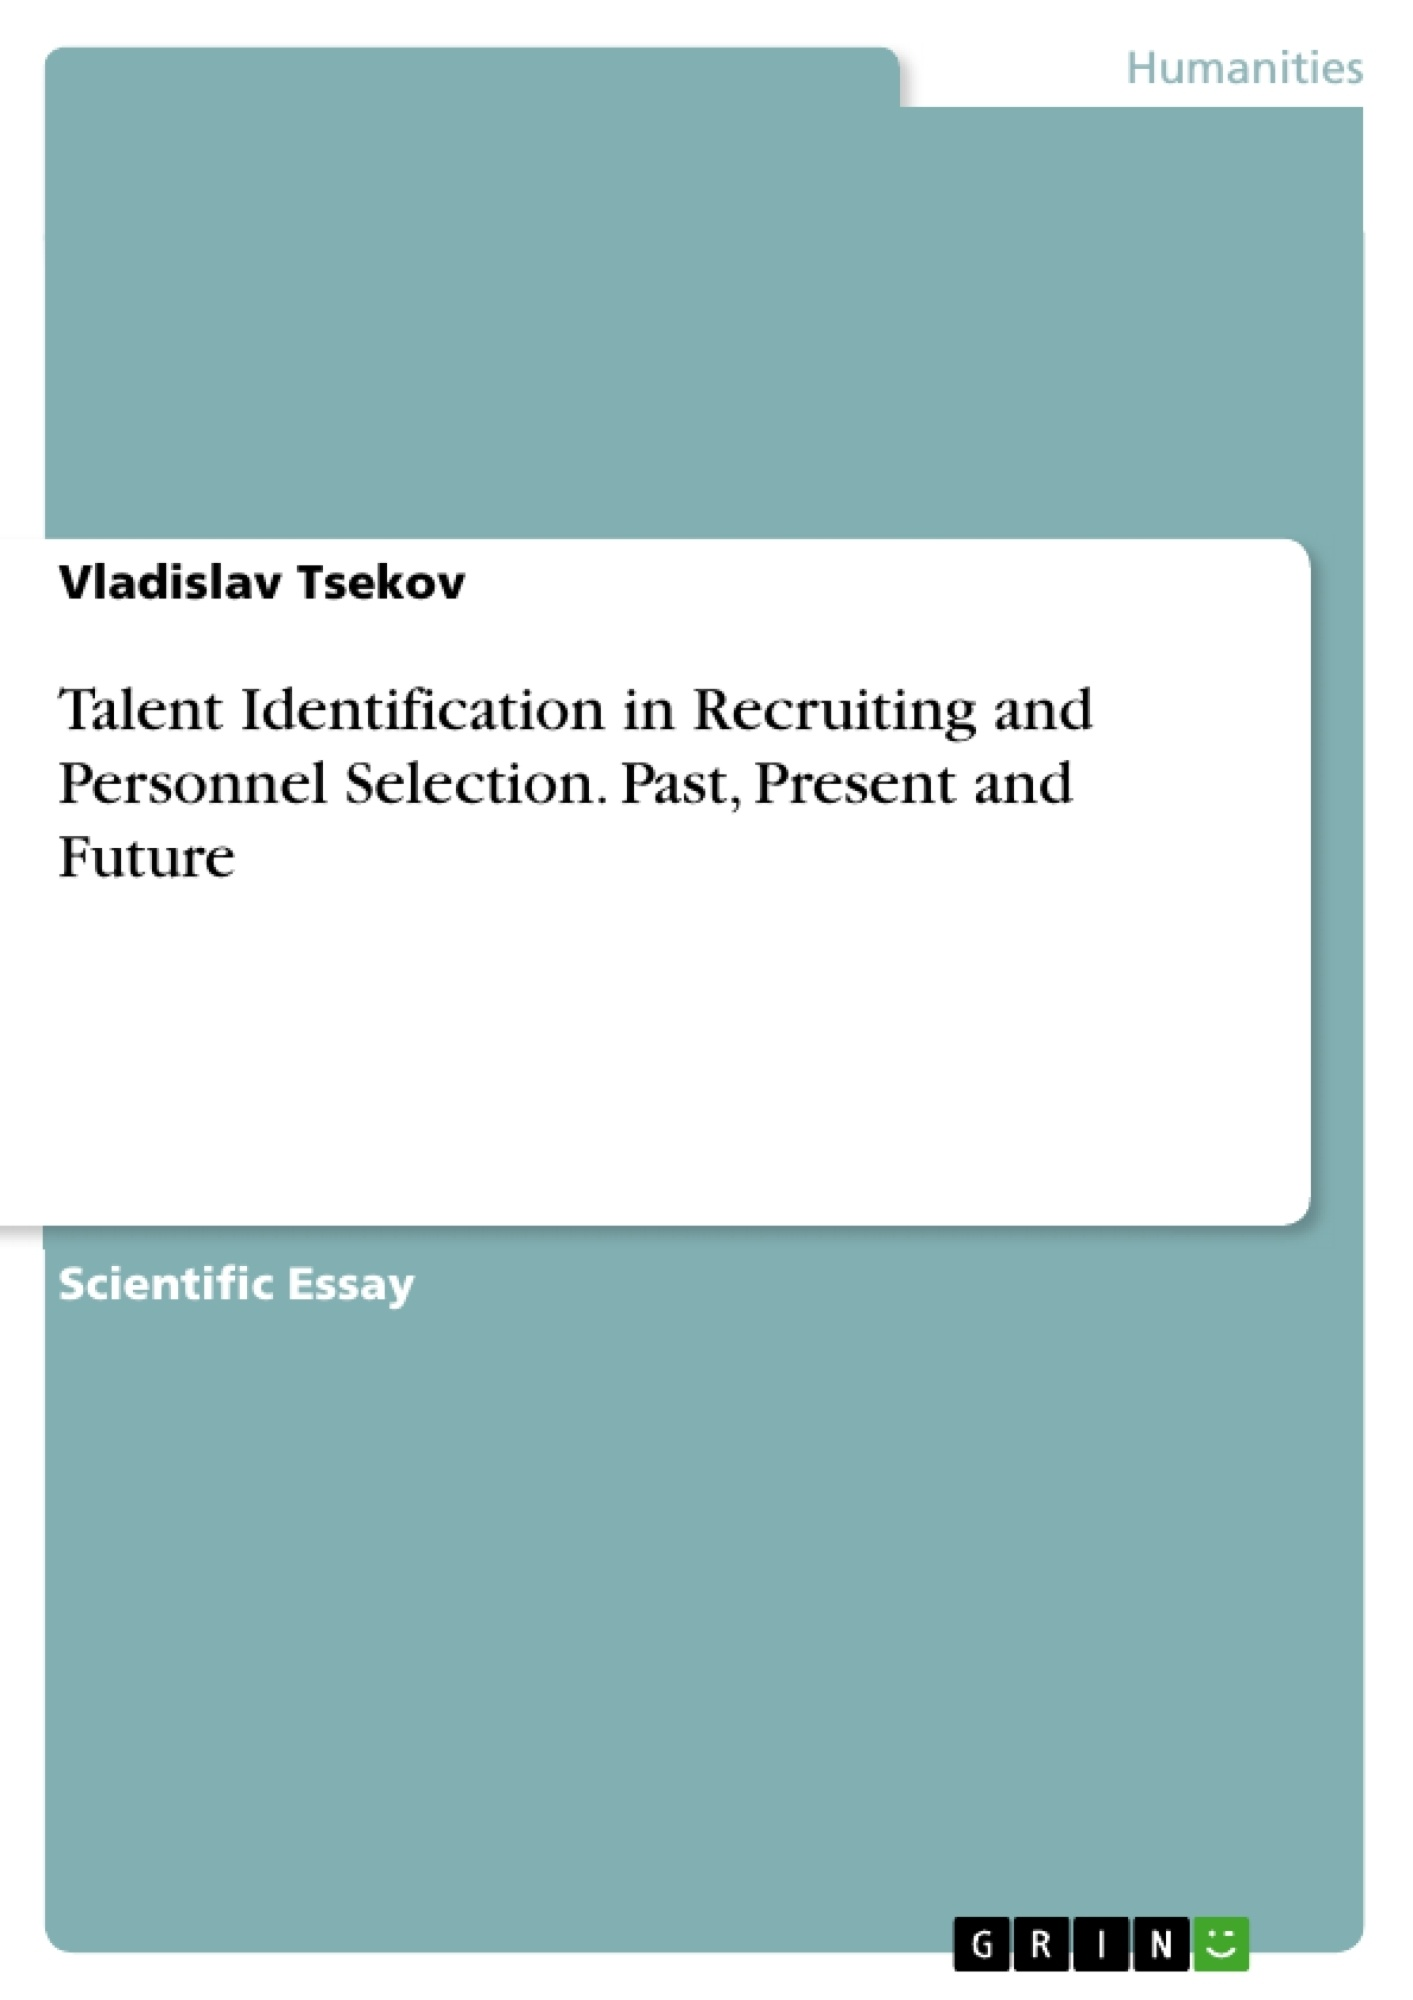 Title: Talent Identification in Recruiting and Personnel Selection. Past, Present and Future